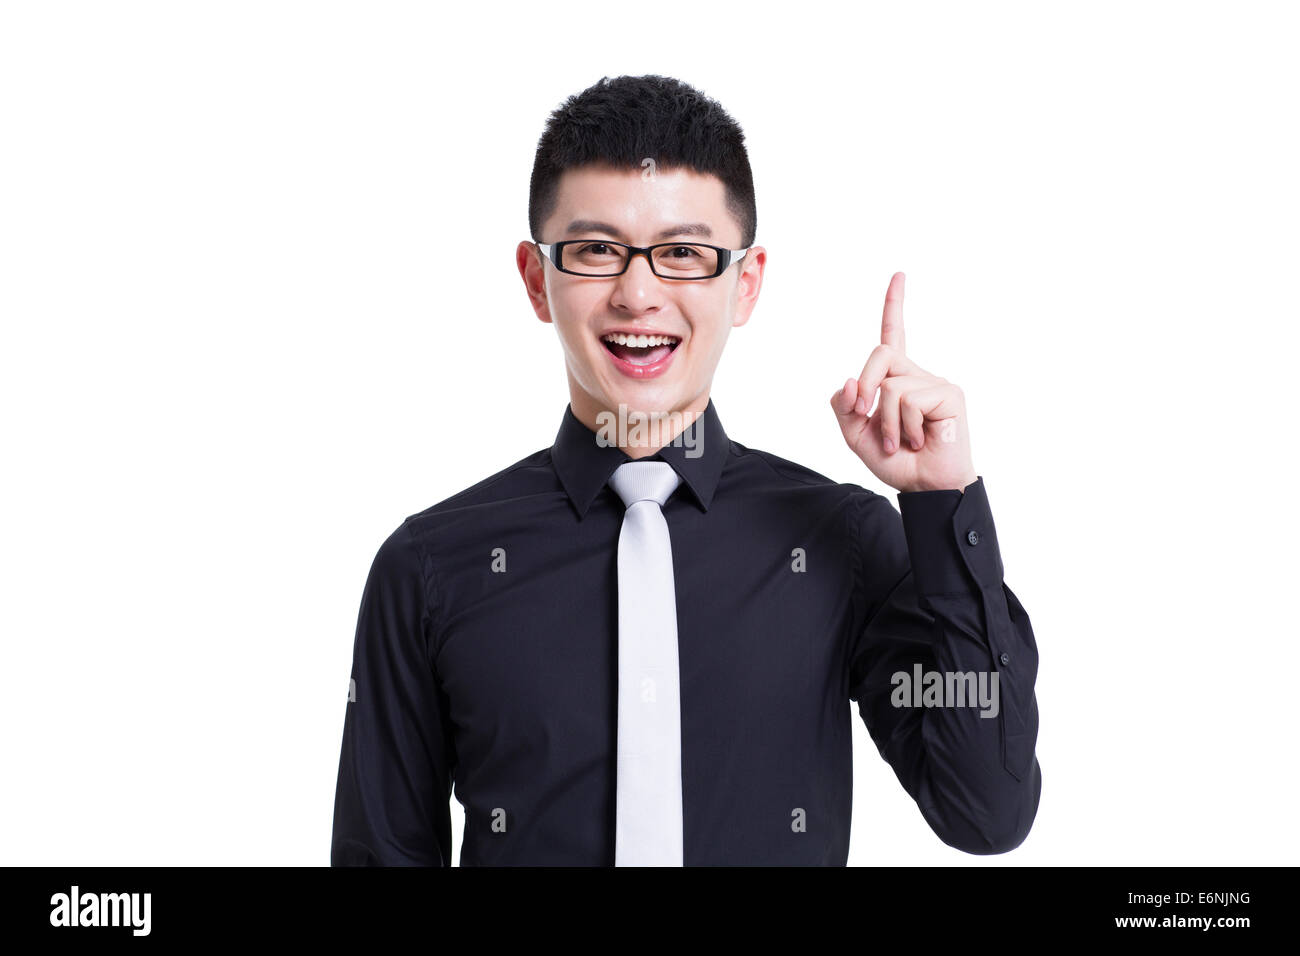 Cheerful young man pointing - Stock Image